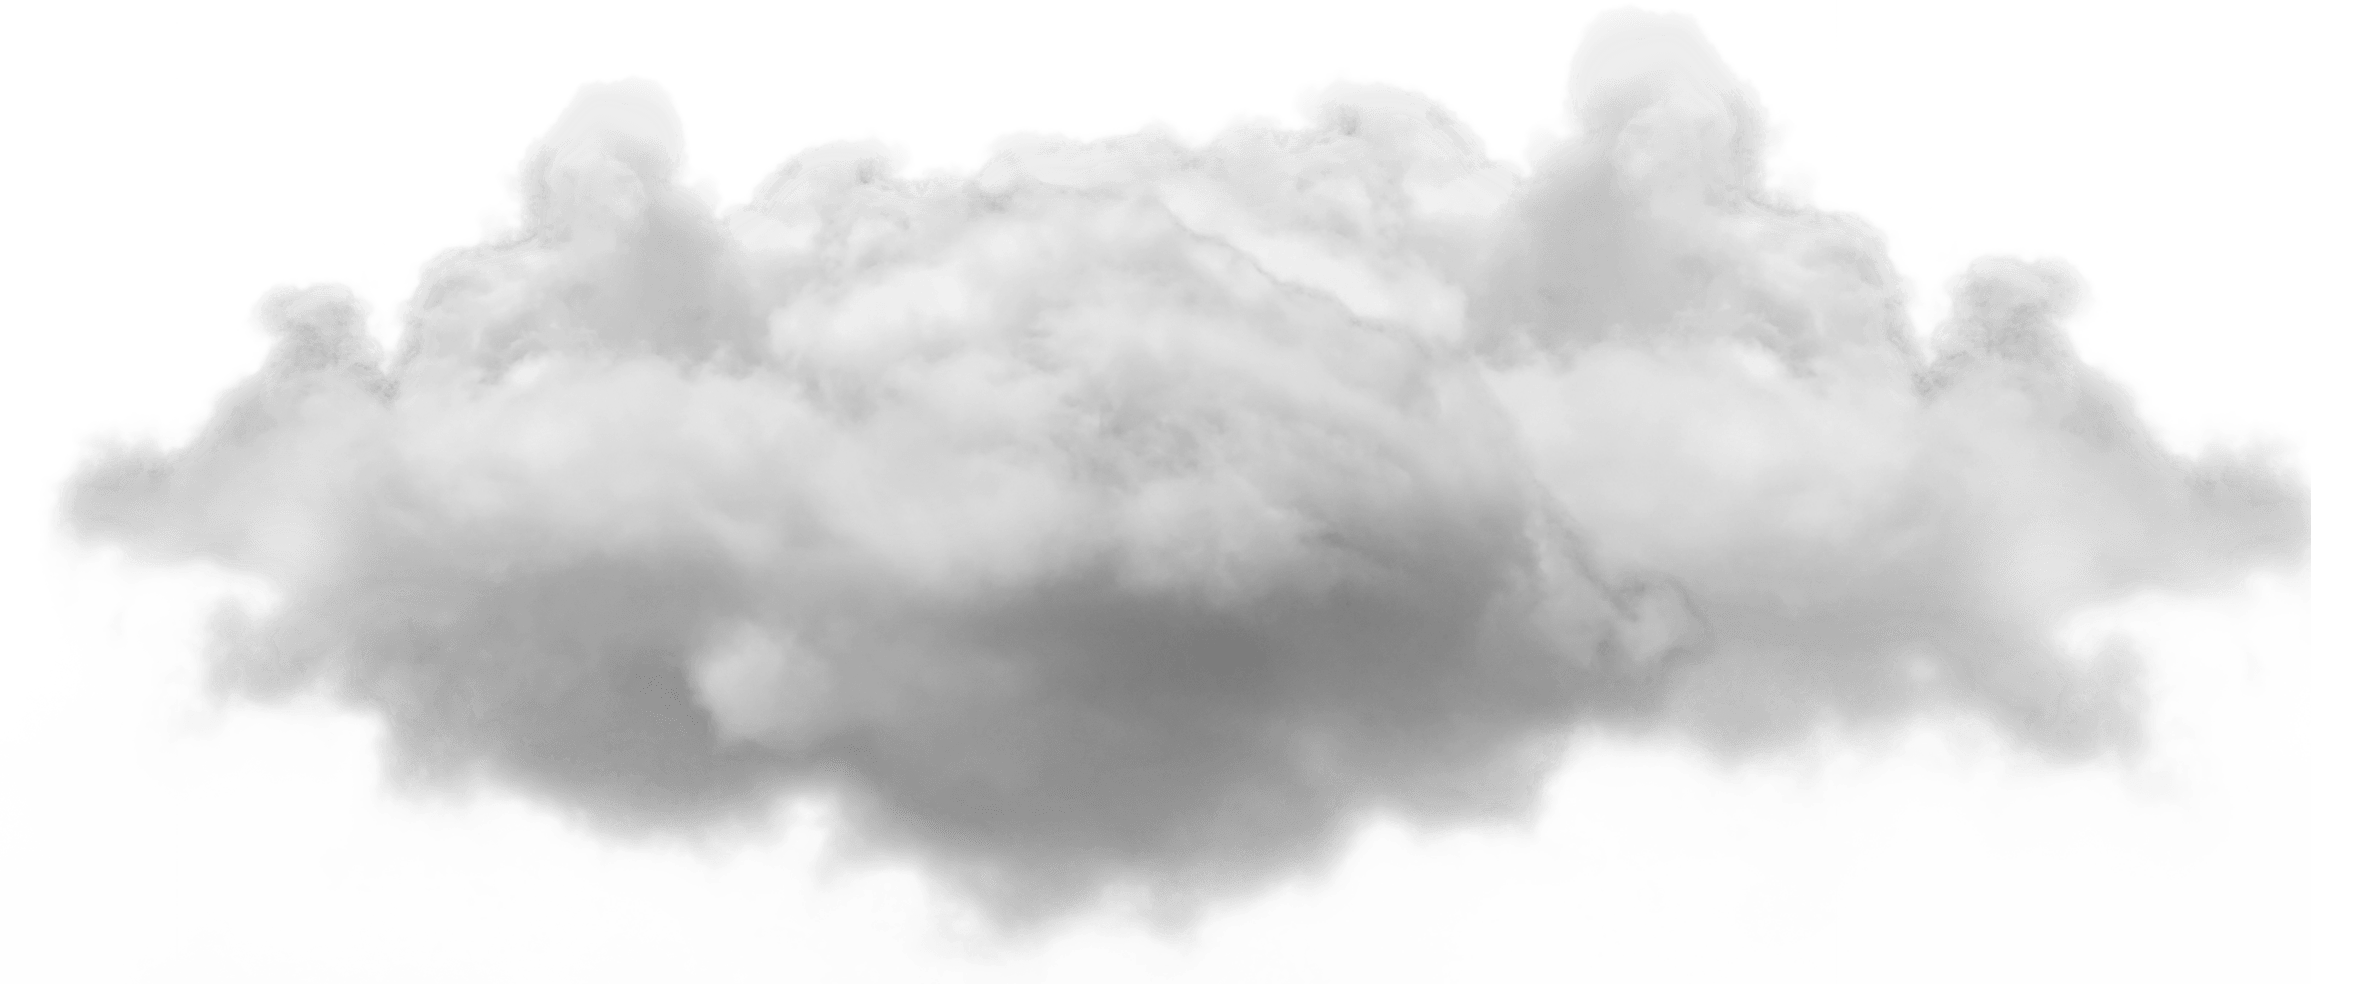 Mist drawing cloud. Small single png image